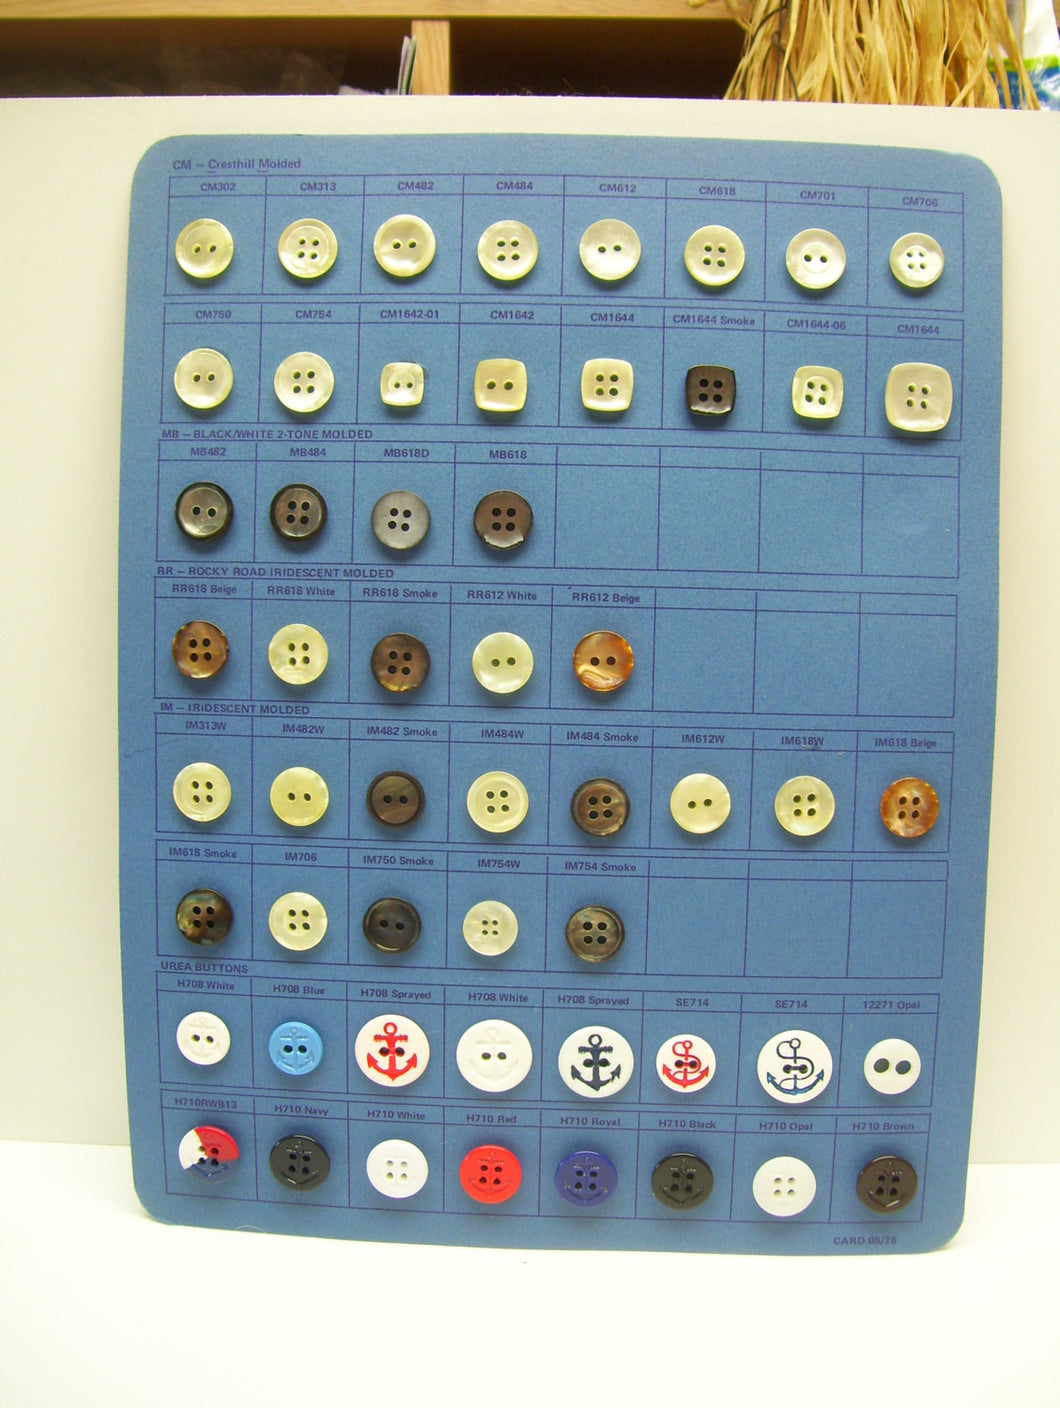 Vintage button card 2/4 holes,buttons, nautical, white, blue, red,  anchor, translucent, black,brownish, orange